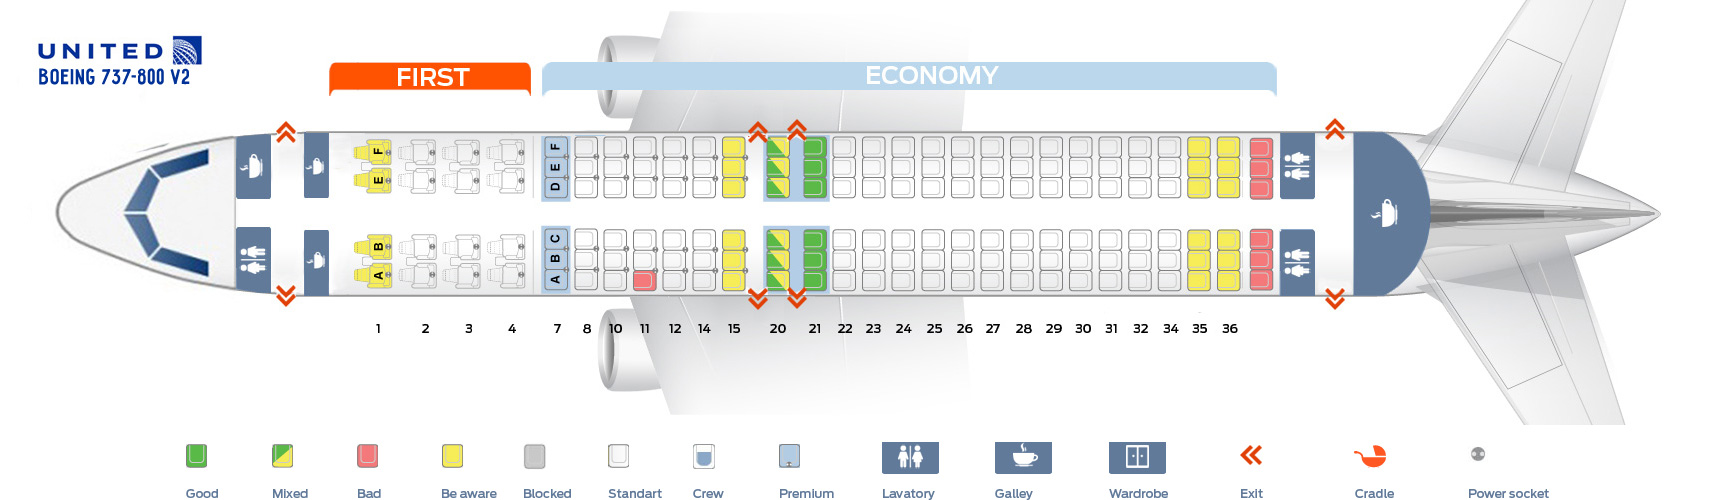 Seat_map_United_Airlines_Boeing_737_800_v2